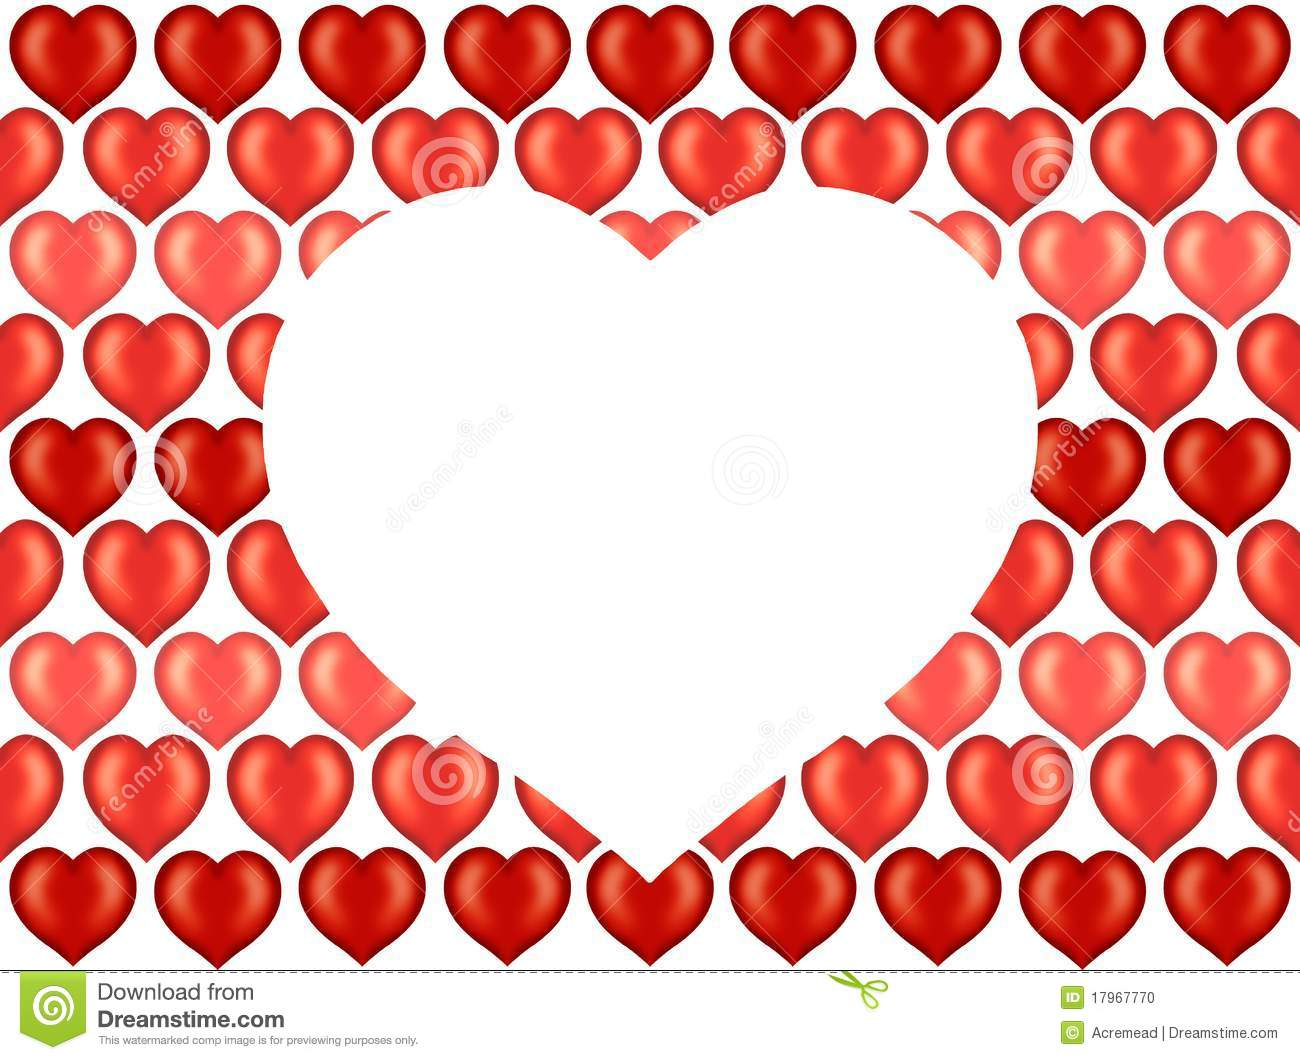 Valentine Hearts Wallpaper, Background Stock Photo - Image: 17967770